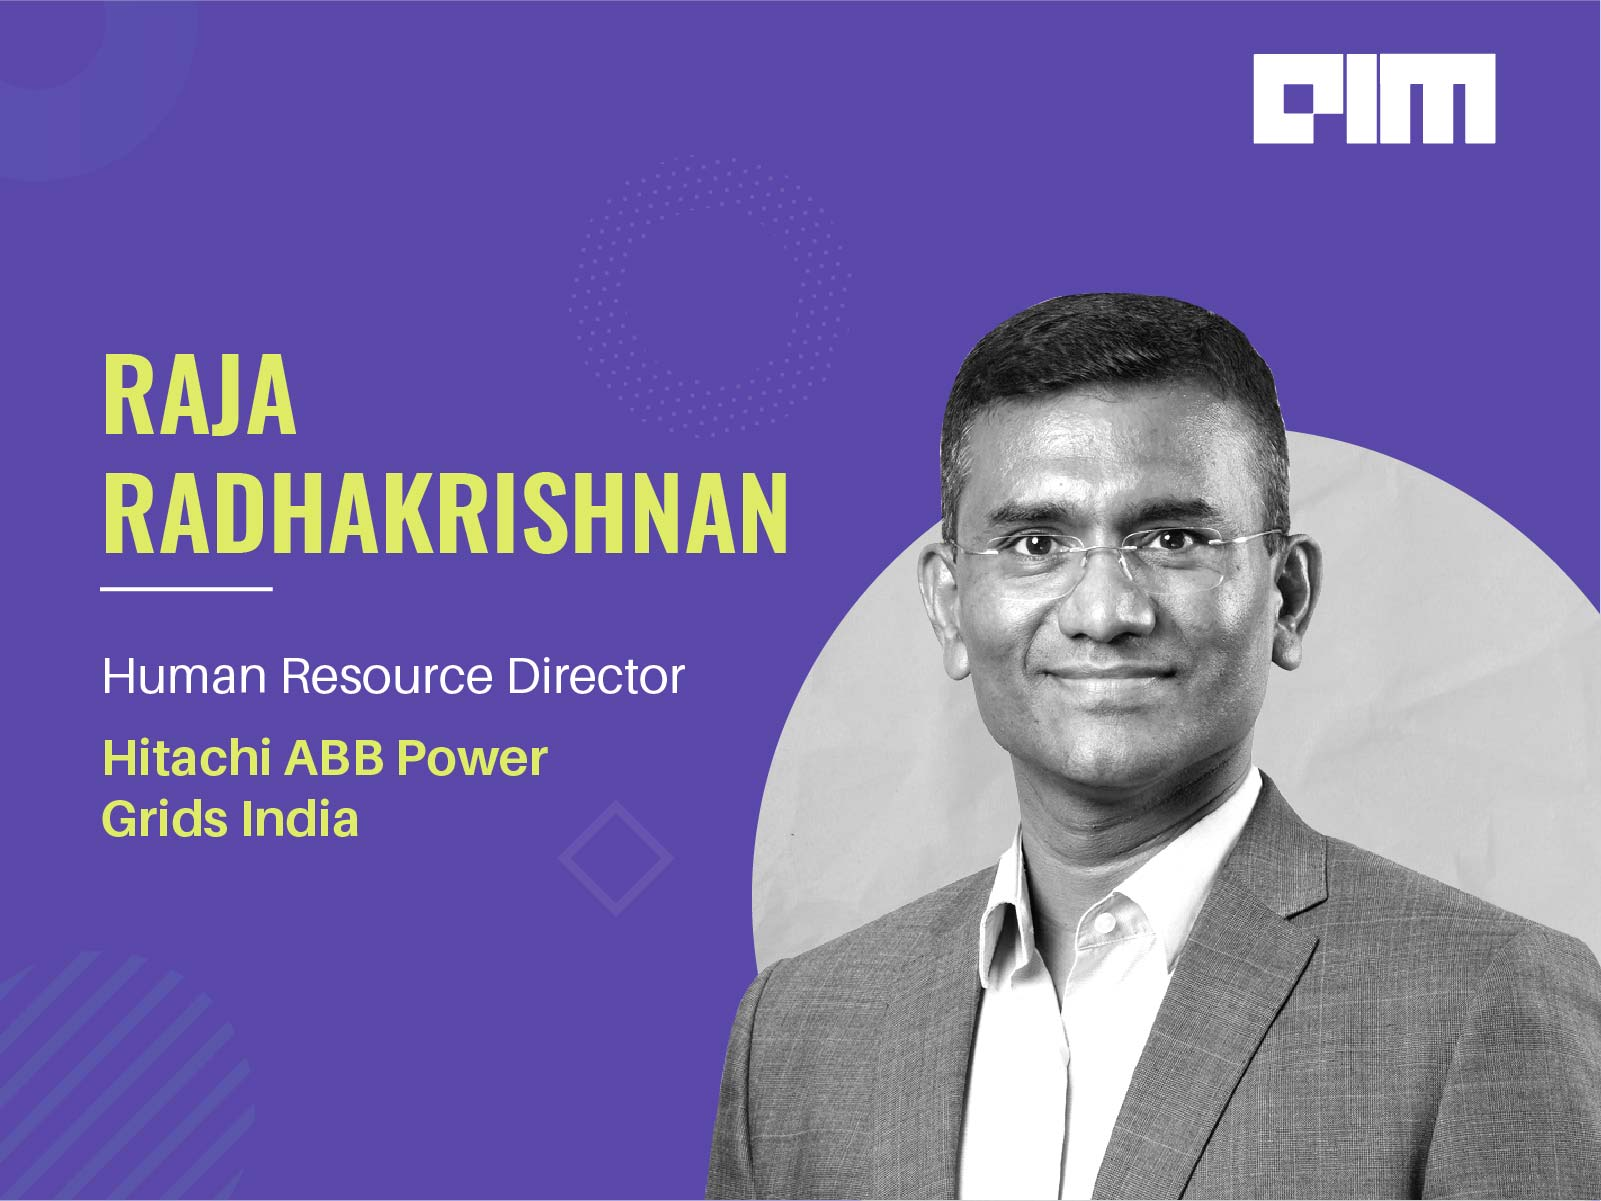 What Is The Hiring Process For Data Scientists At Hitachi ABB Power Grids